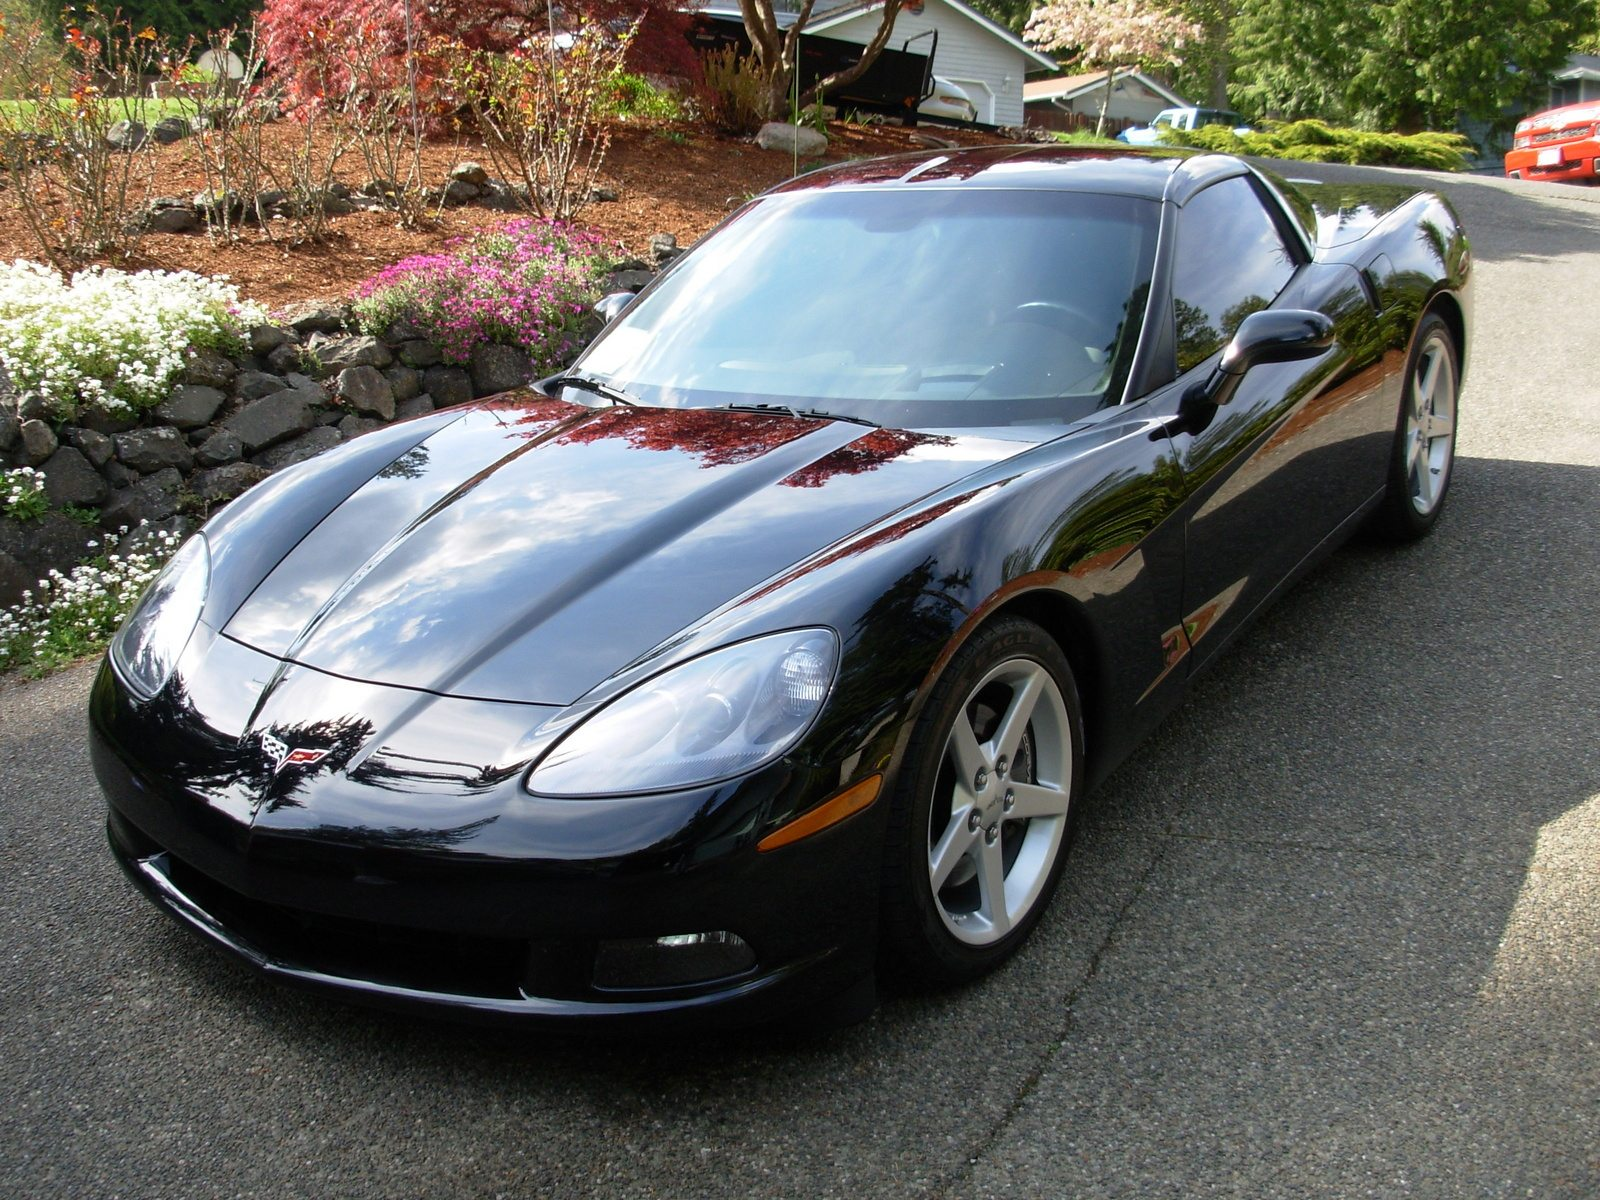 Corvette C6 For Sale >> 2005 C6 Corvette | Image Gallery & Pictures